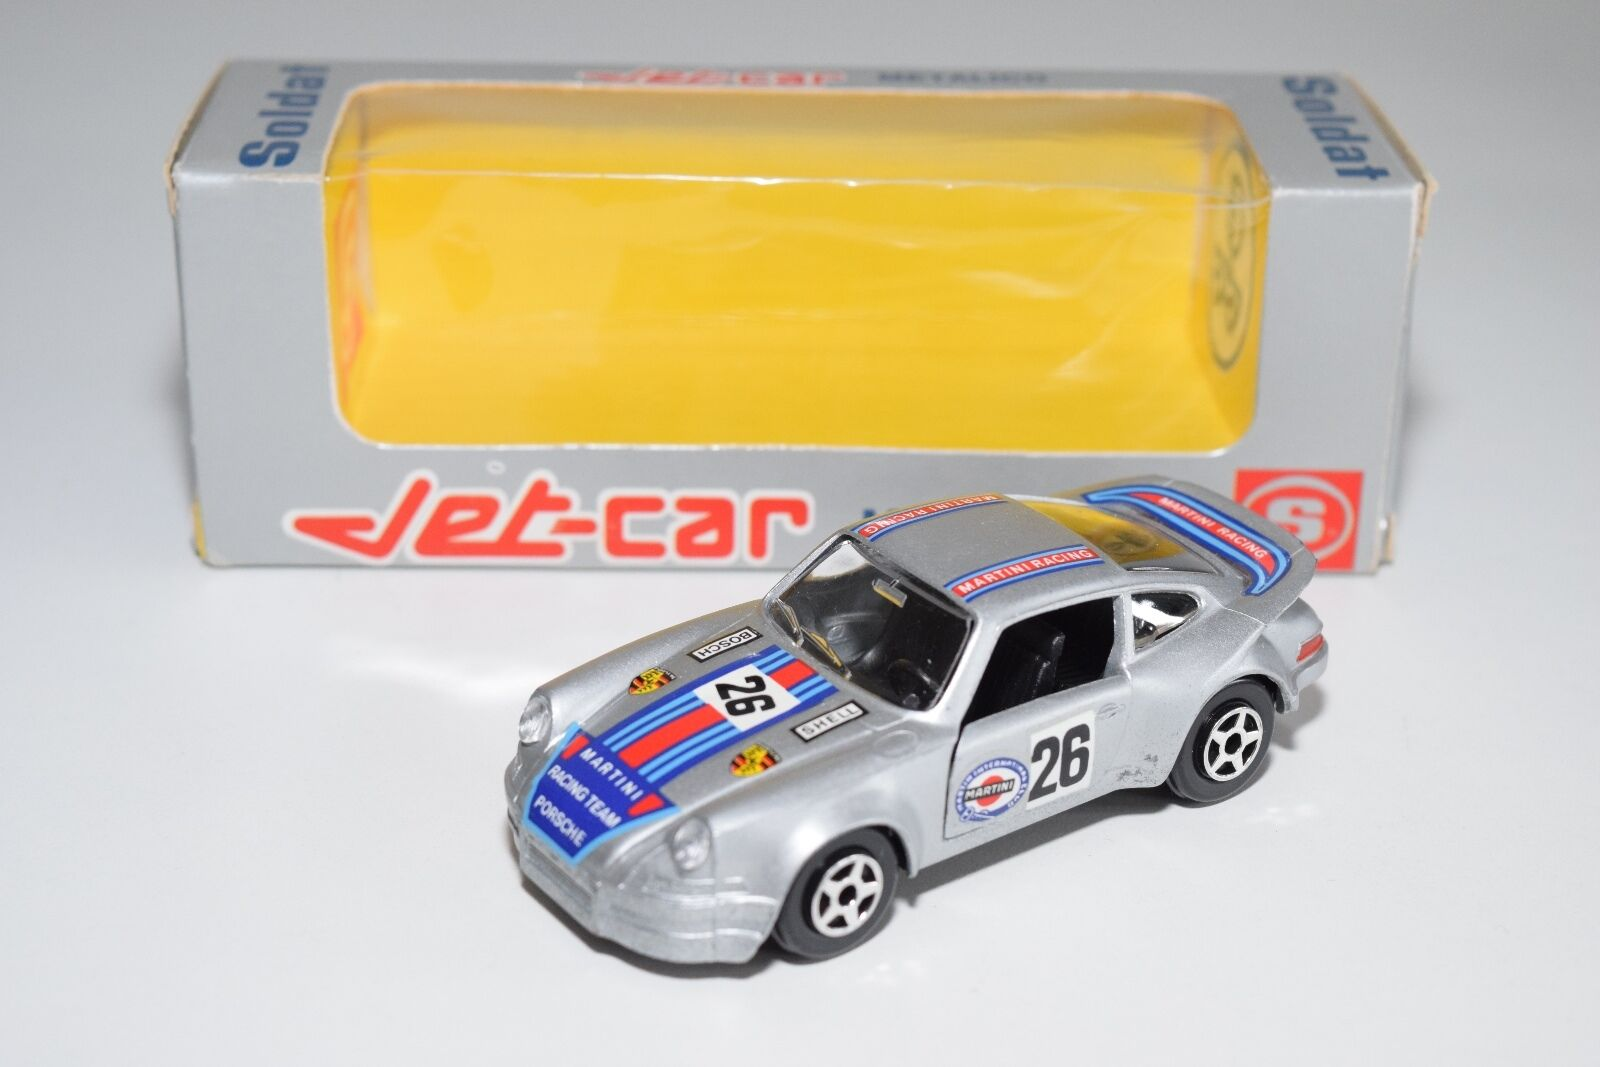 + NOREV JET-CAR SOLDAT SPANISH BOX 839 PORSCHE CARRERA RSR MARTINI MINT BOXED